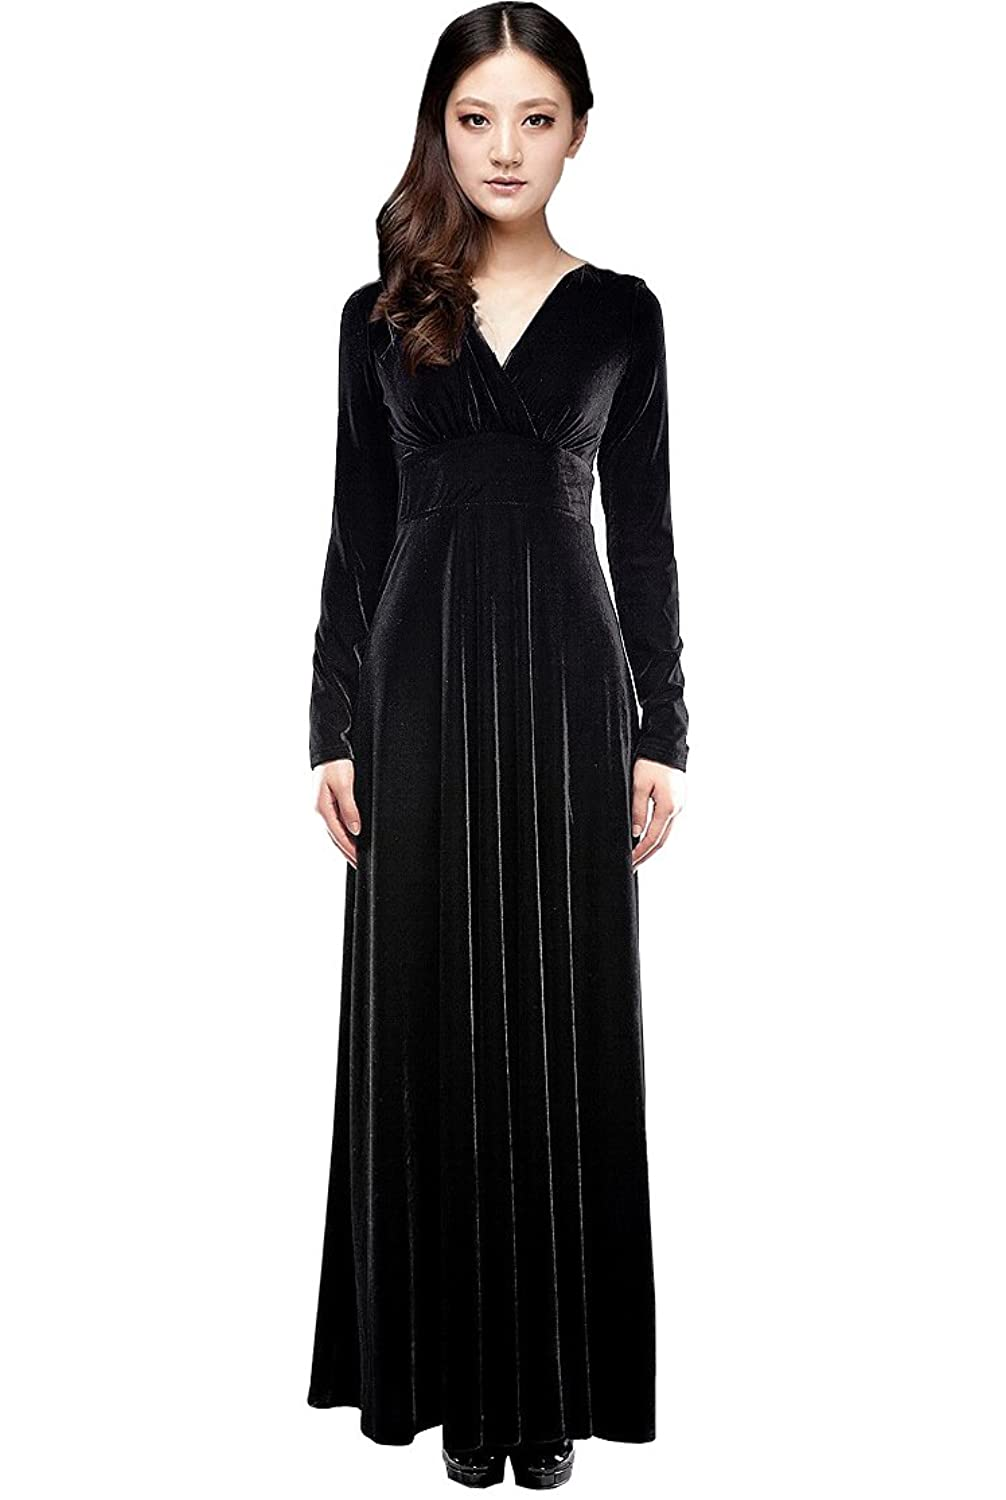 Amazon.com: Medeshe Black Formal Long Velvet Dress Evening Party ...